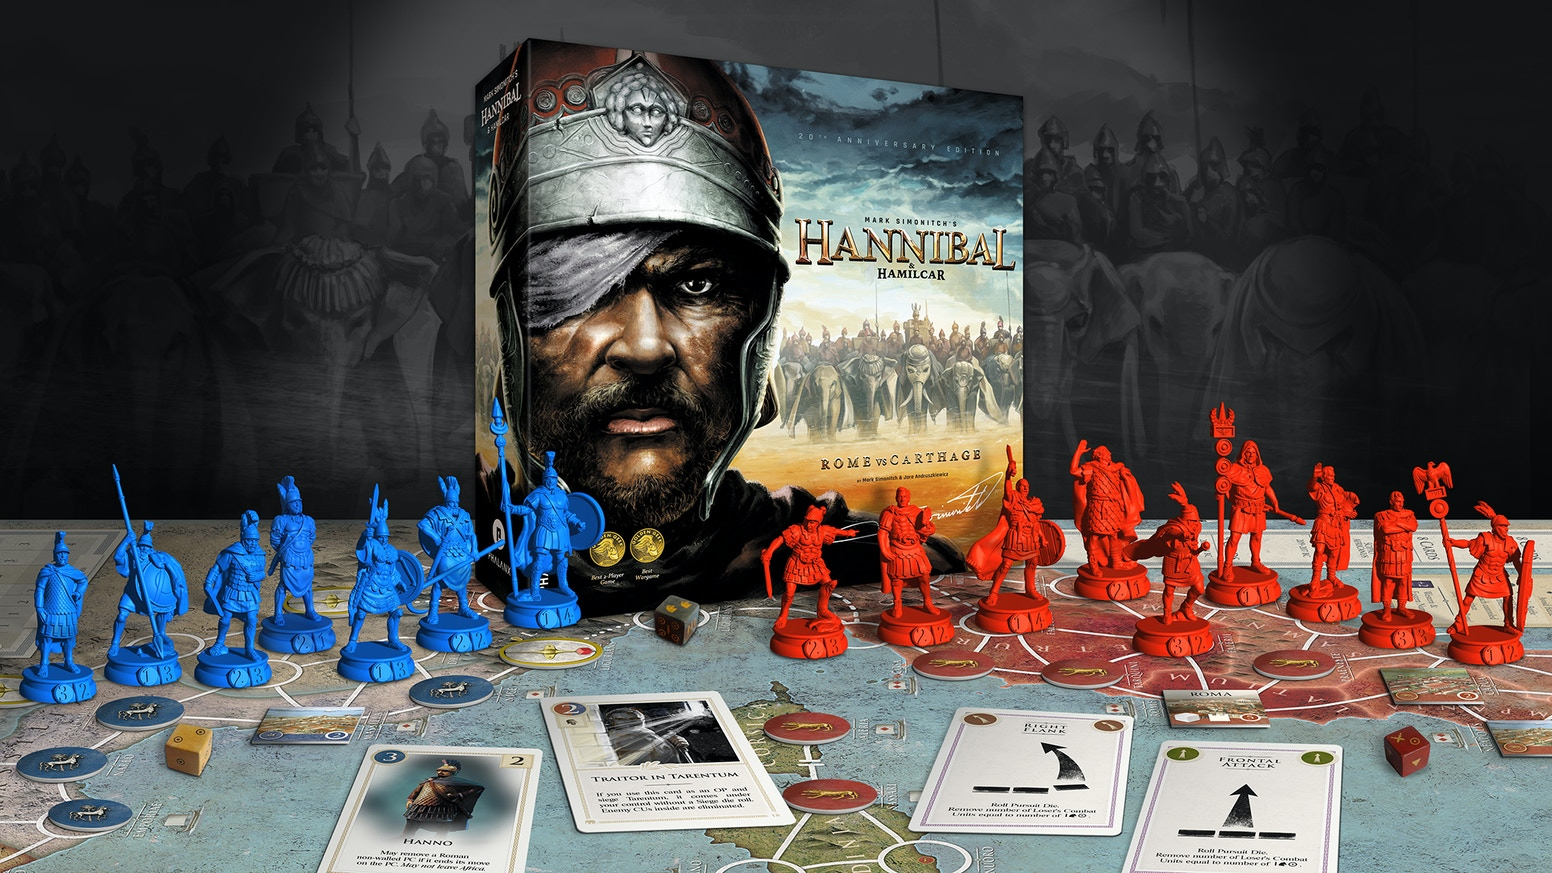 20th Anniversary Edition of award-winning 2-player game by legendary Mark Simonitch. Two games on epic struggle of Rome and Carthage.